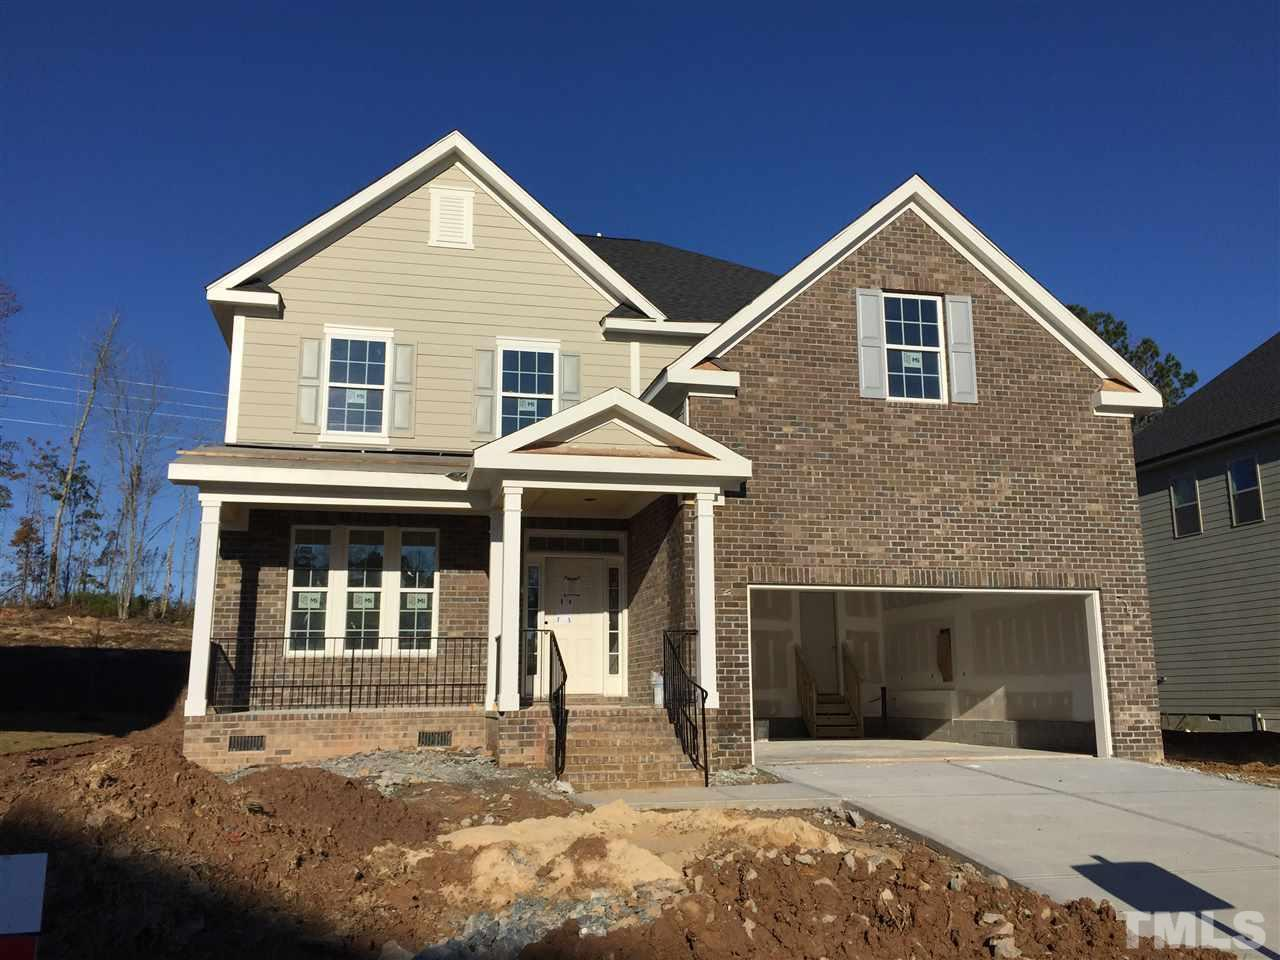 3032 Curling Creek Drive Lot 237, Apex, NC 27502